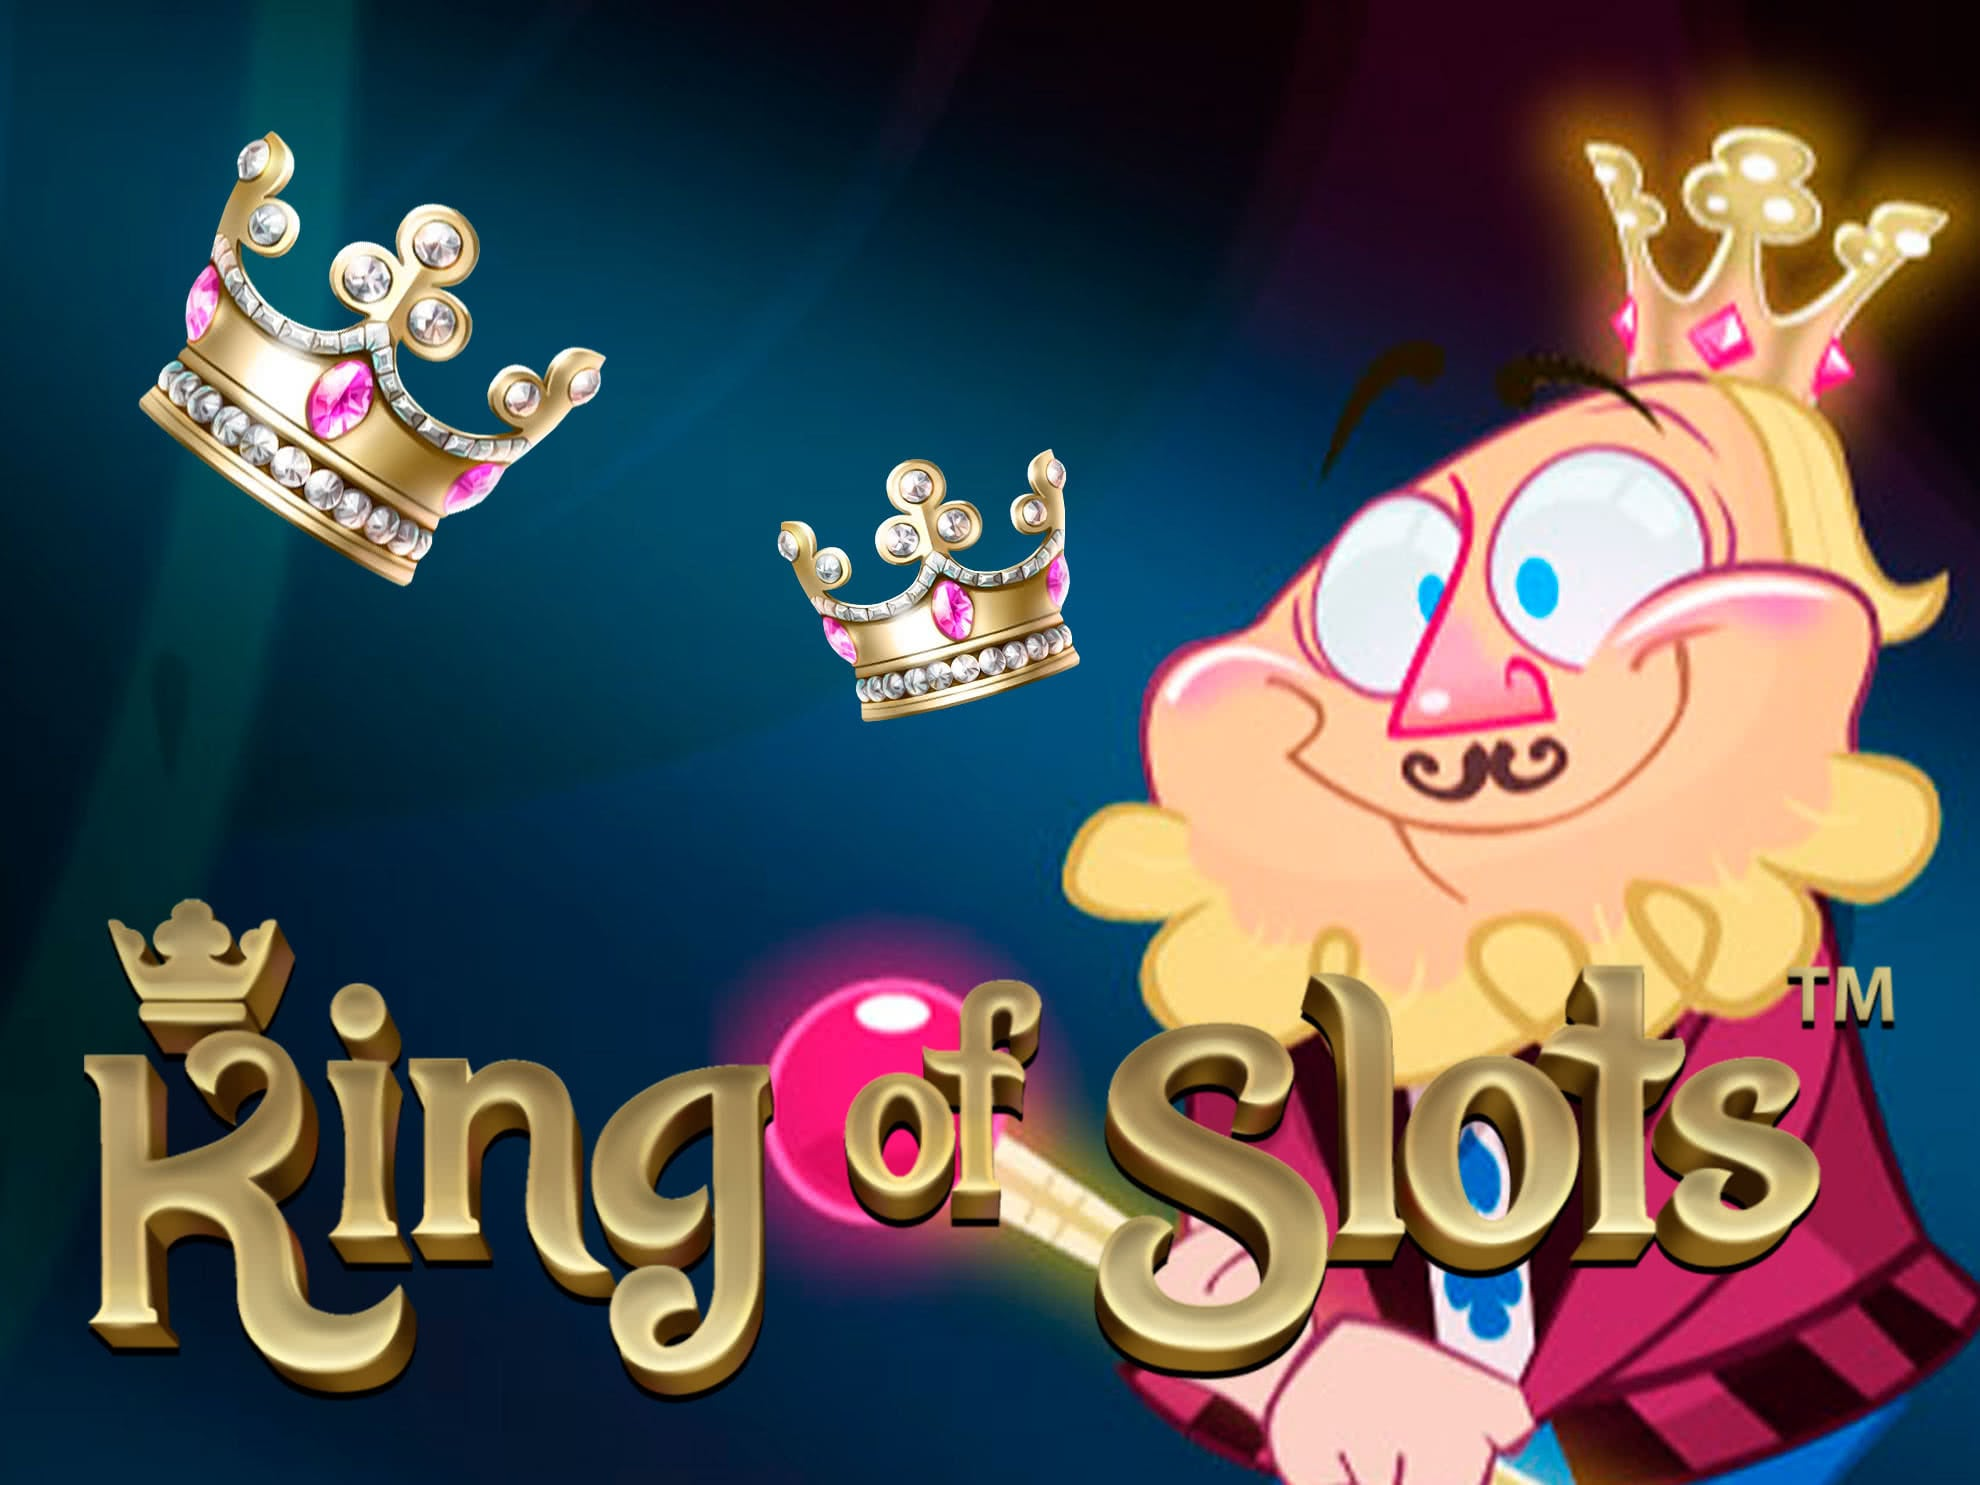 King of Slots Online Game by NetEnt - Play for Free